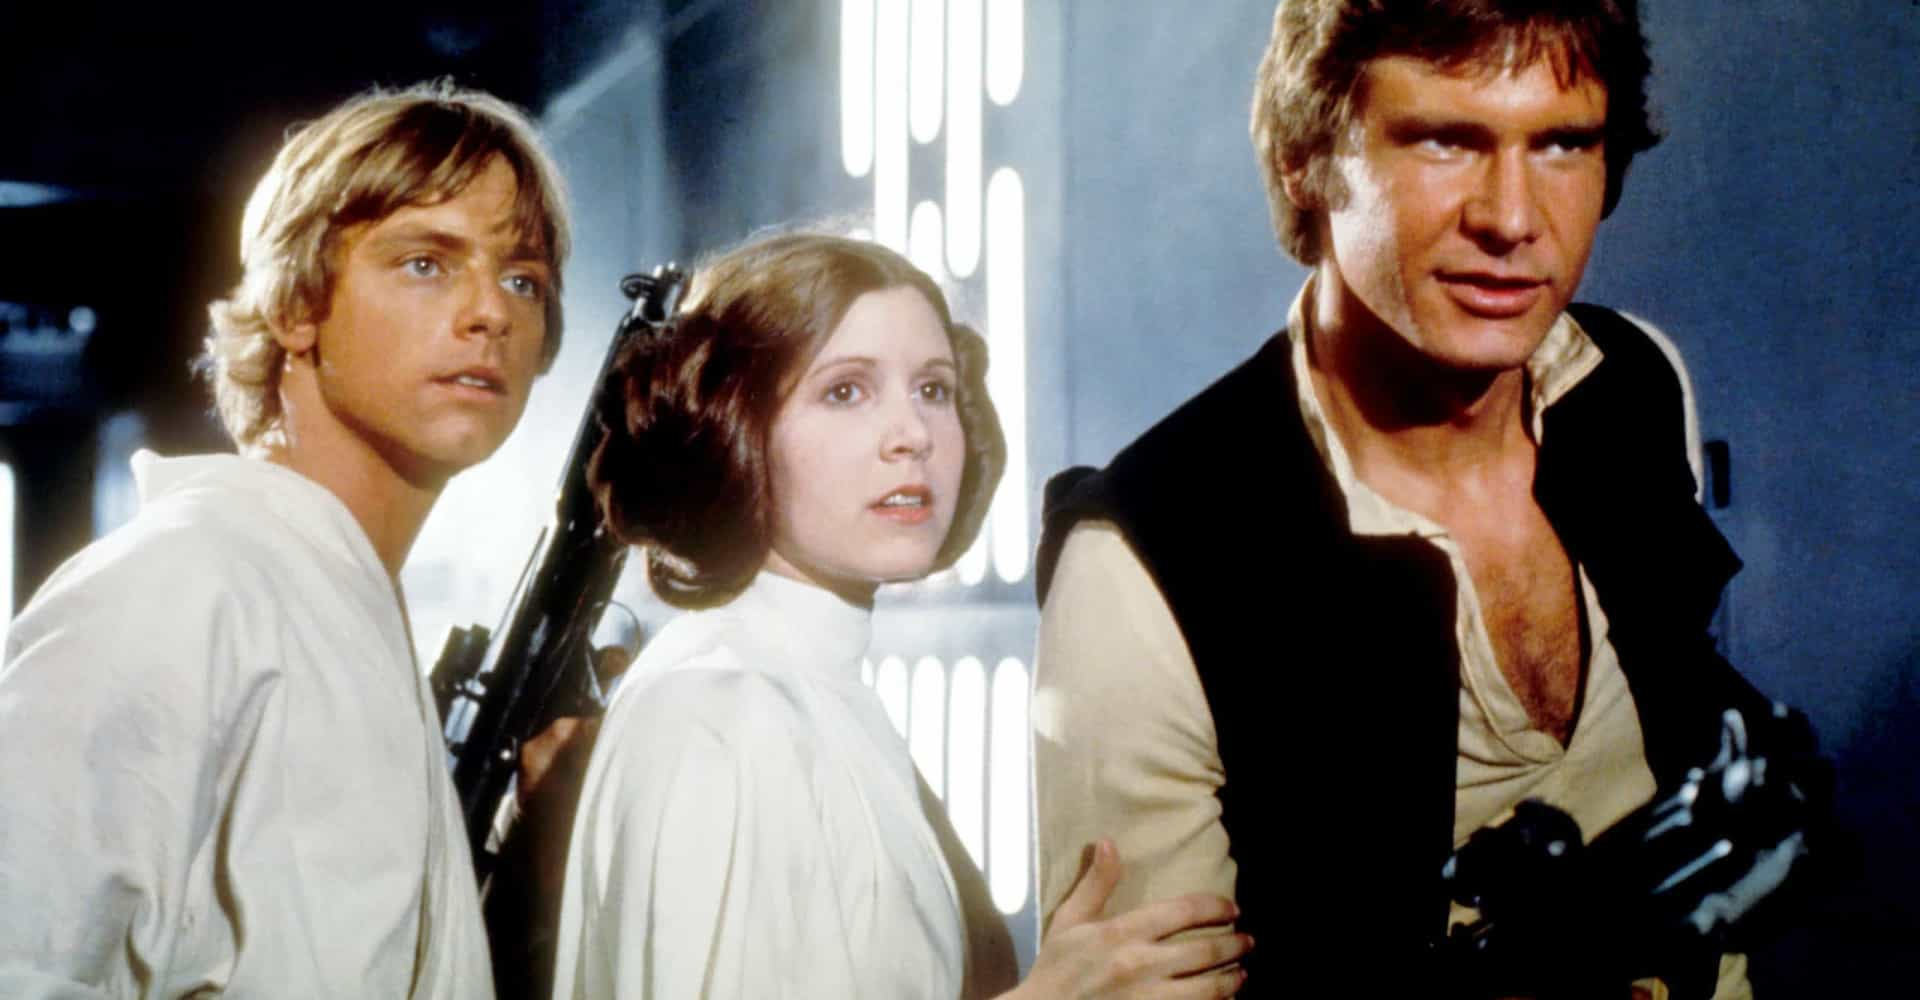 'May the fourth': Desvende o universo de Star Wars